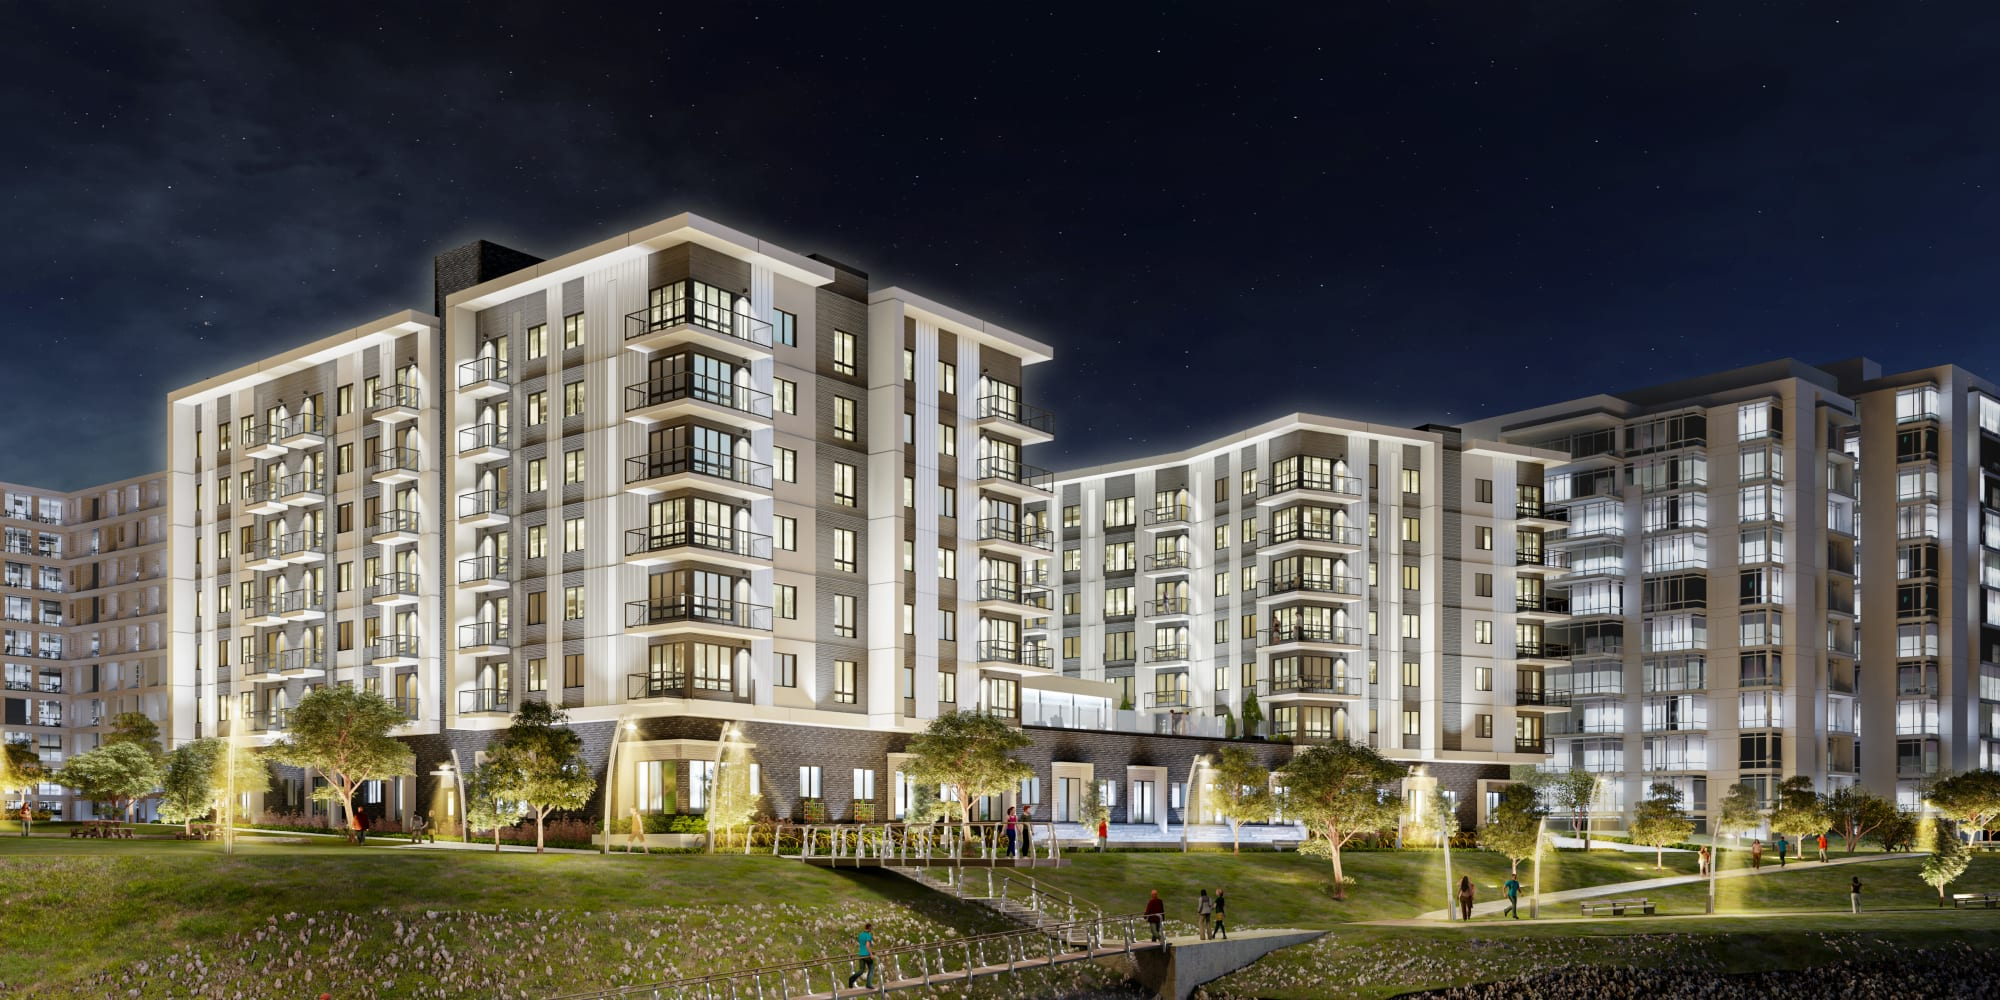 Apartments at The Columbia at the Waterfront in Vancouver, Washington